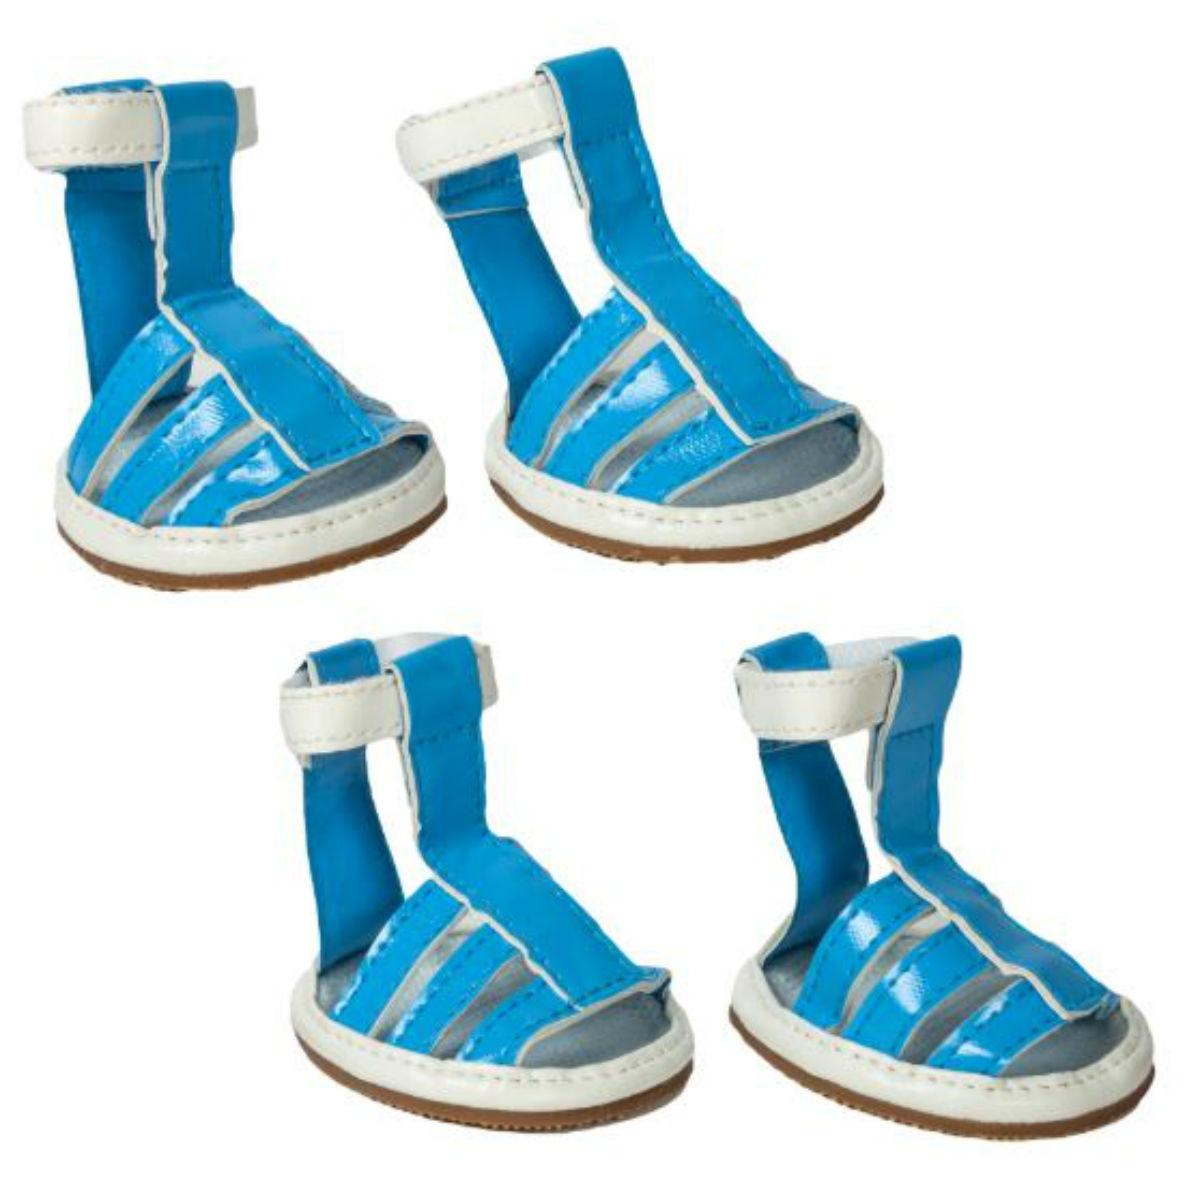 Pet Life Buckle-Supportive PVC Waterproof Dog Sandals Shoes - Ocean Blue